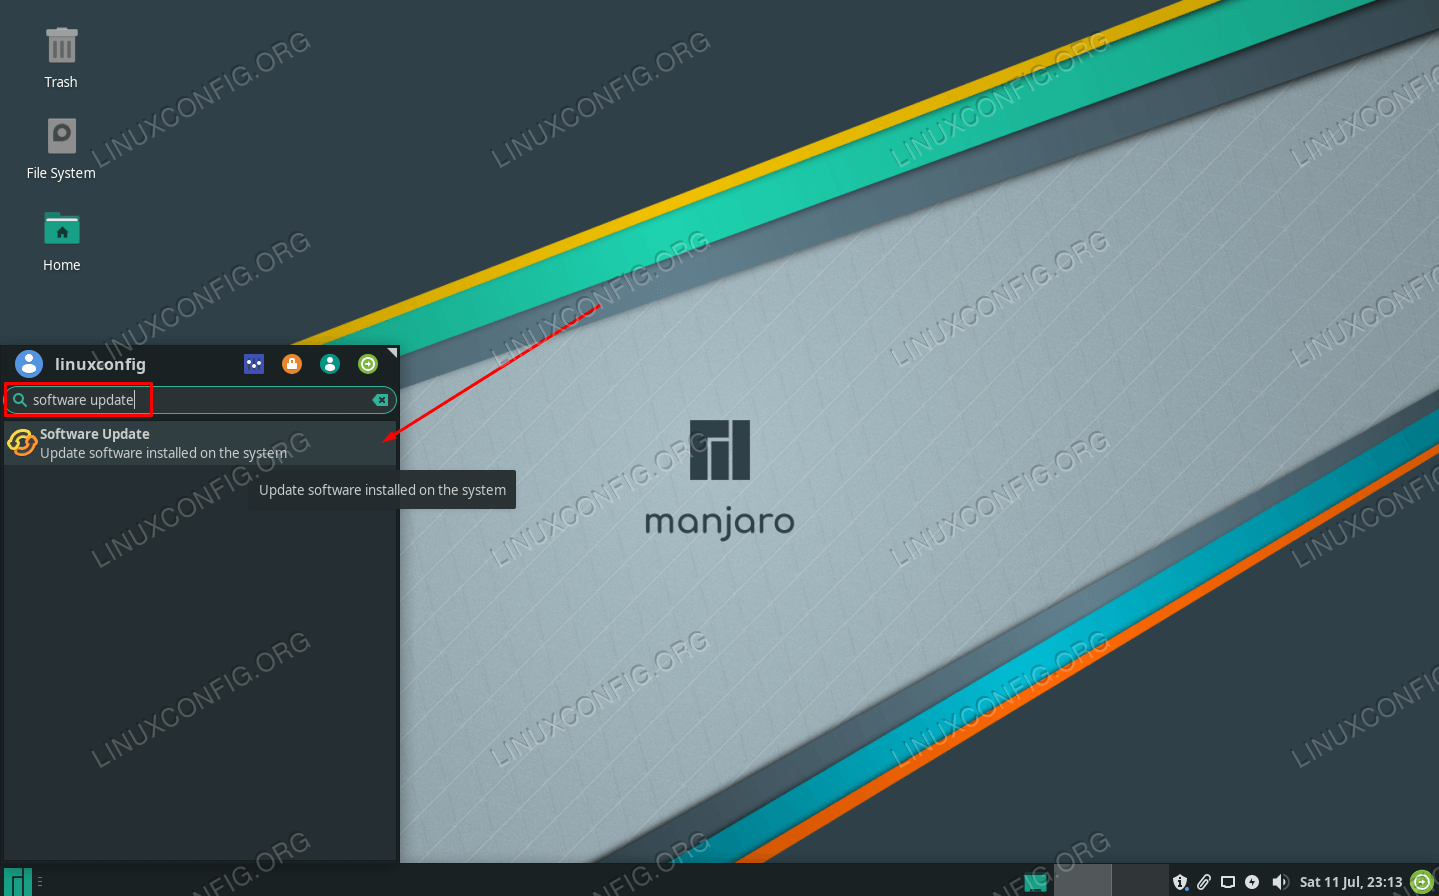 Open the software manager in your GUI from the application launcher